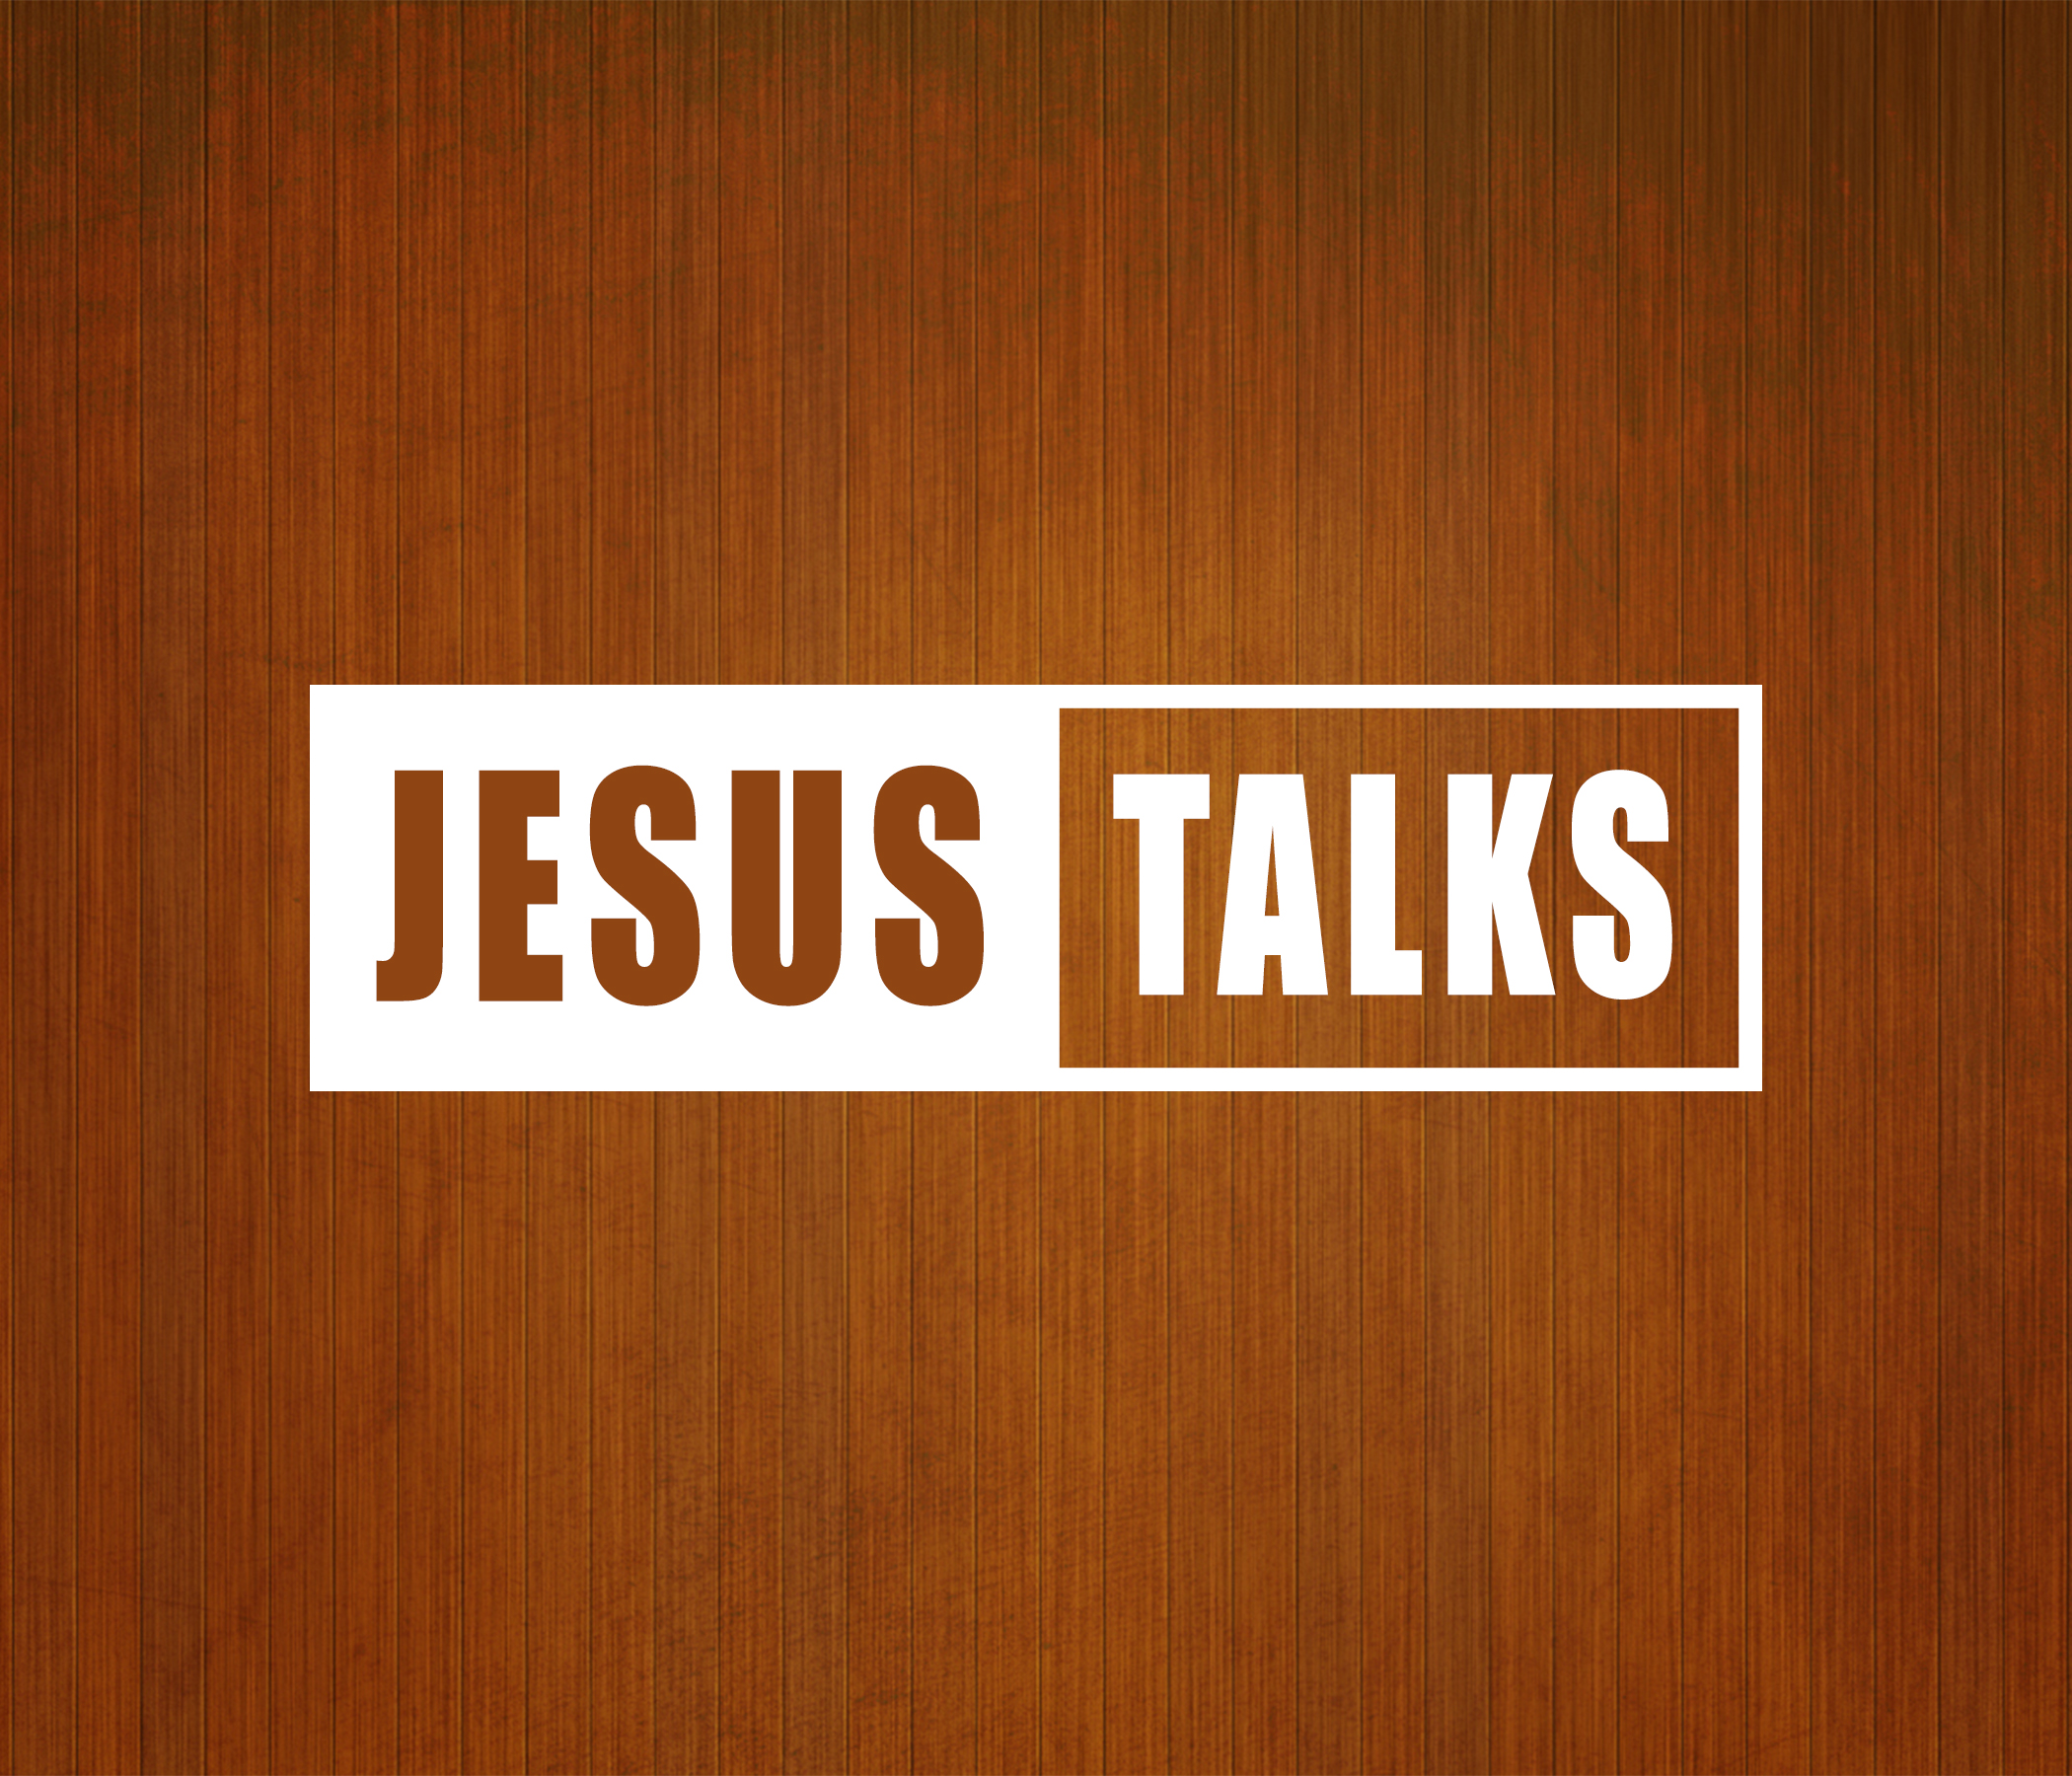 Jesus Talks | Am I a Pharisee | Part 2 - 7.14.19 | Phillip Martin